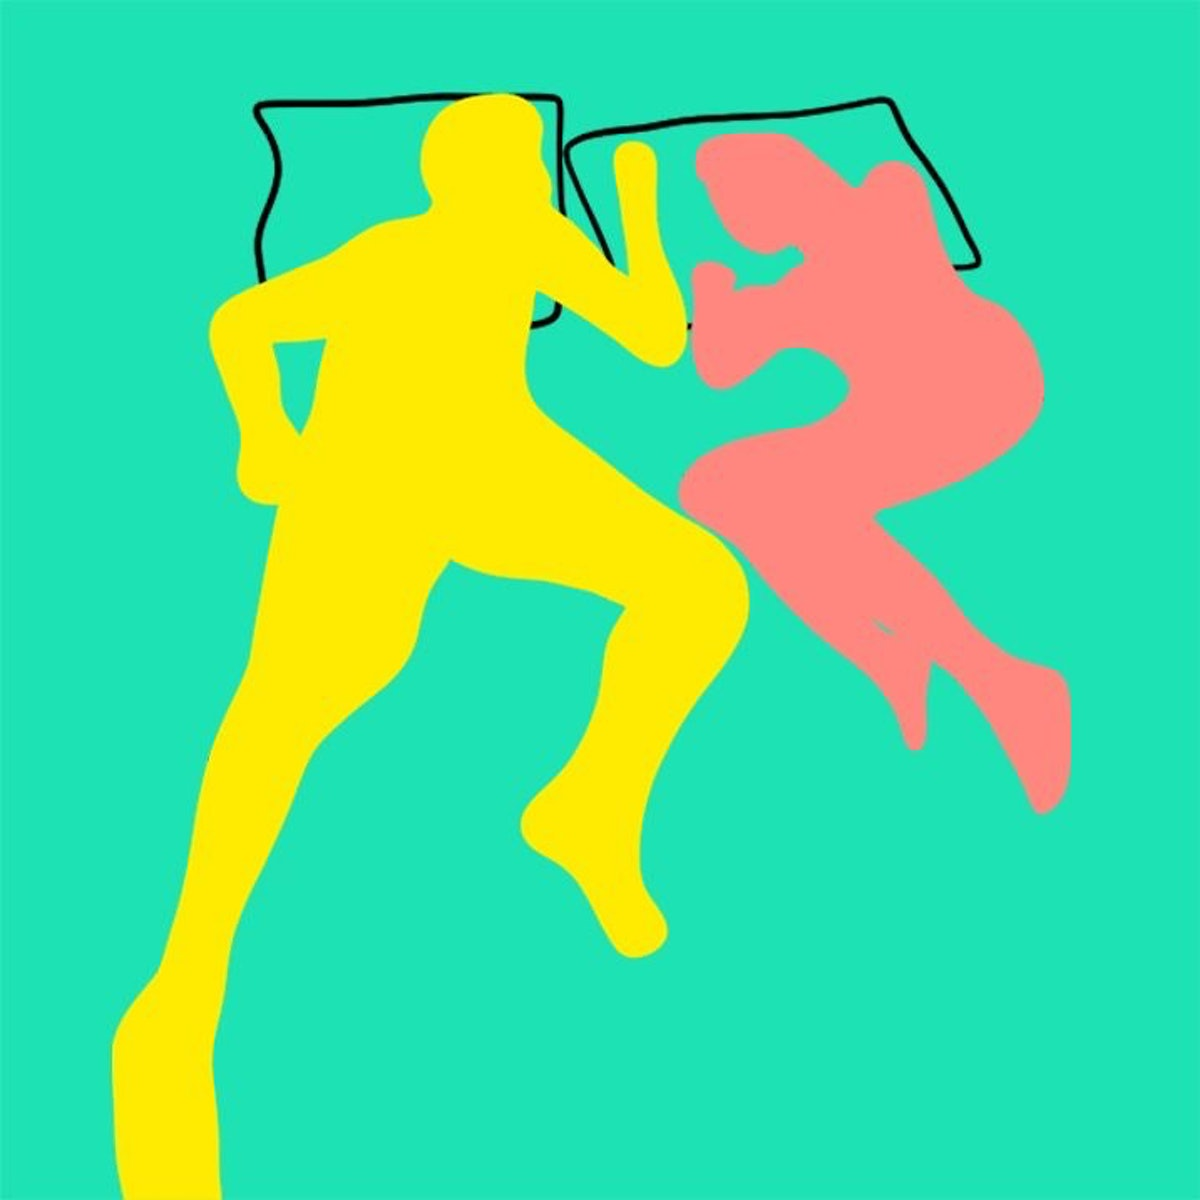 Facing opposite directions when you sleep may mean there's distance between you and your partner.